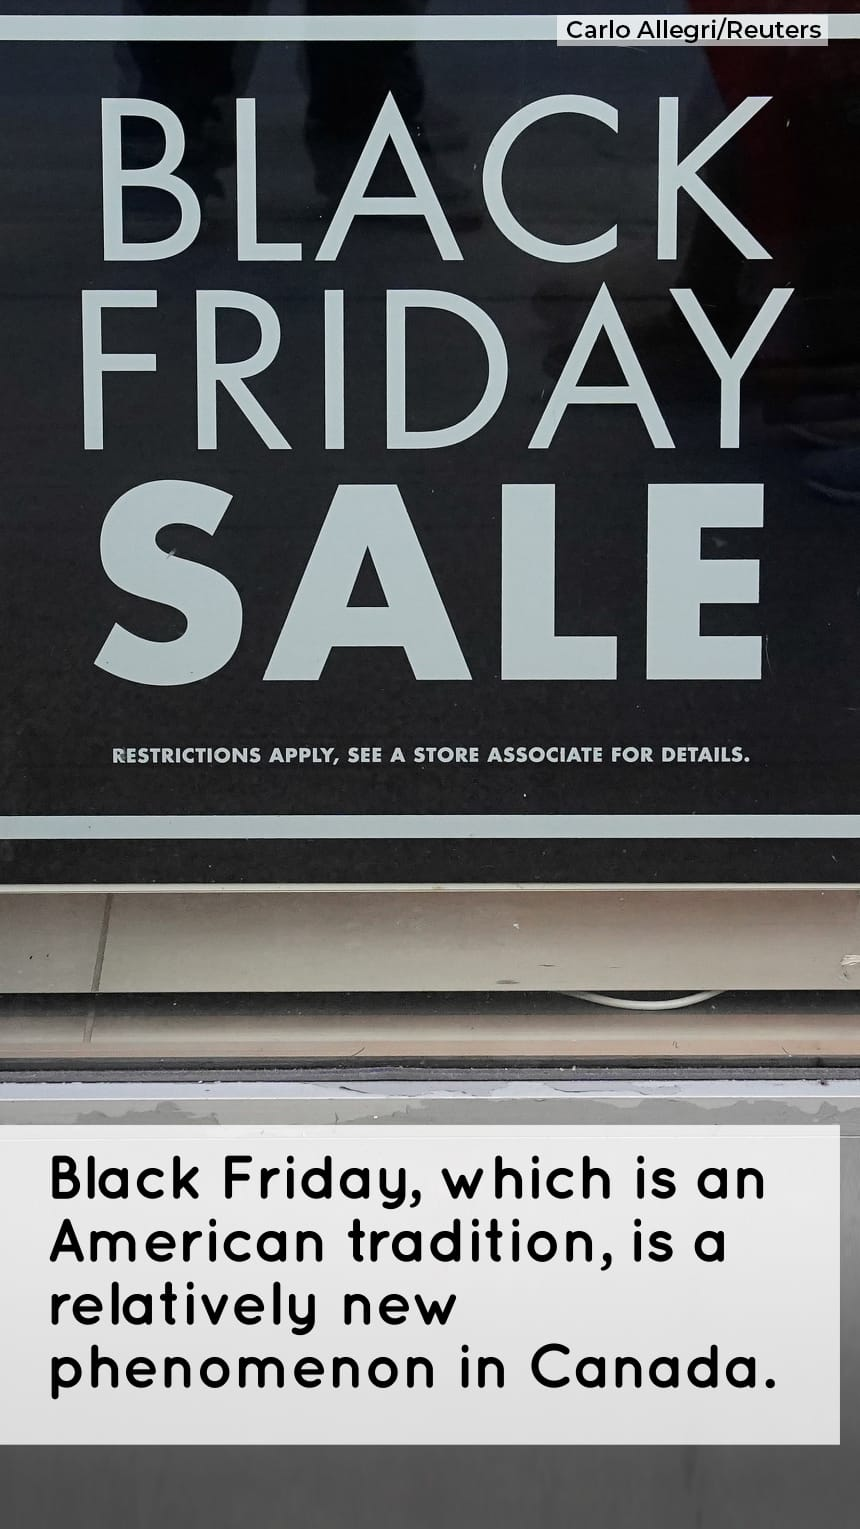 Black Friday, which is an American tradition, is a relatively new phenomenon in Canada.